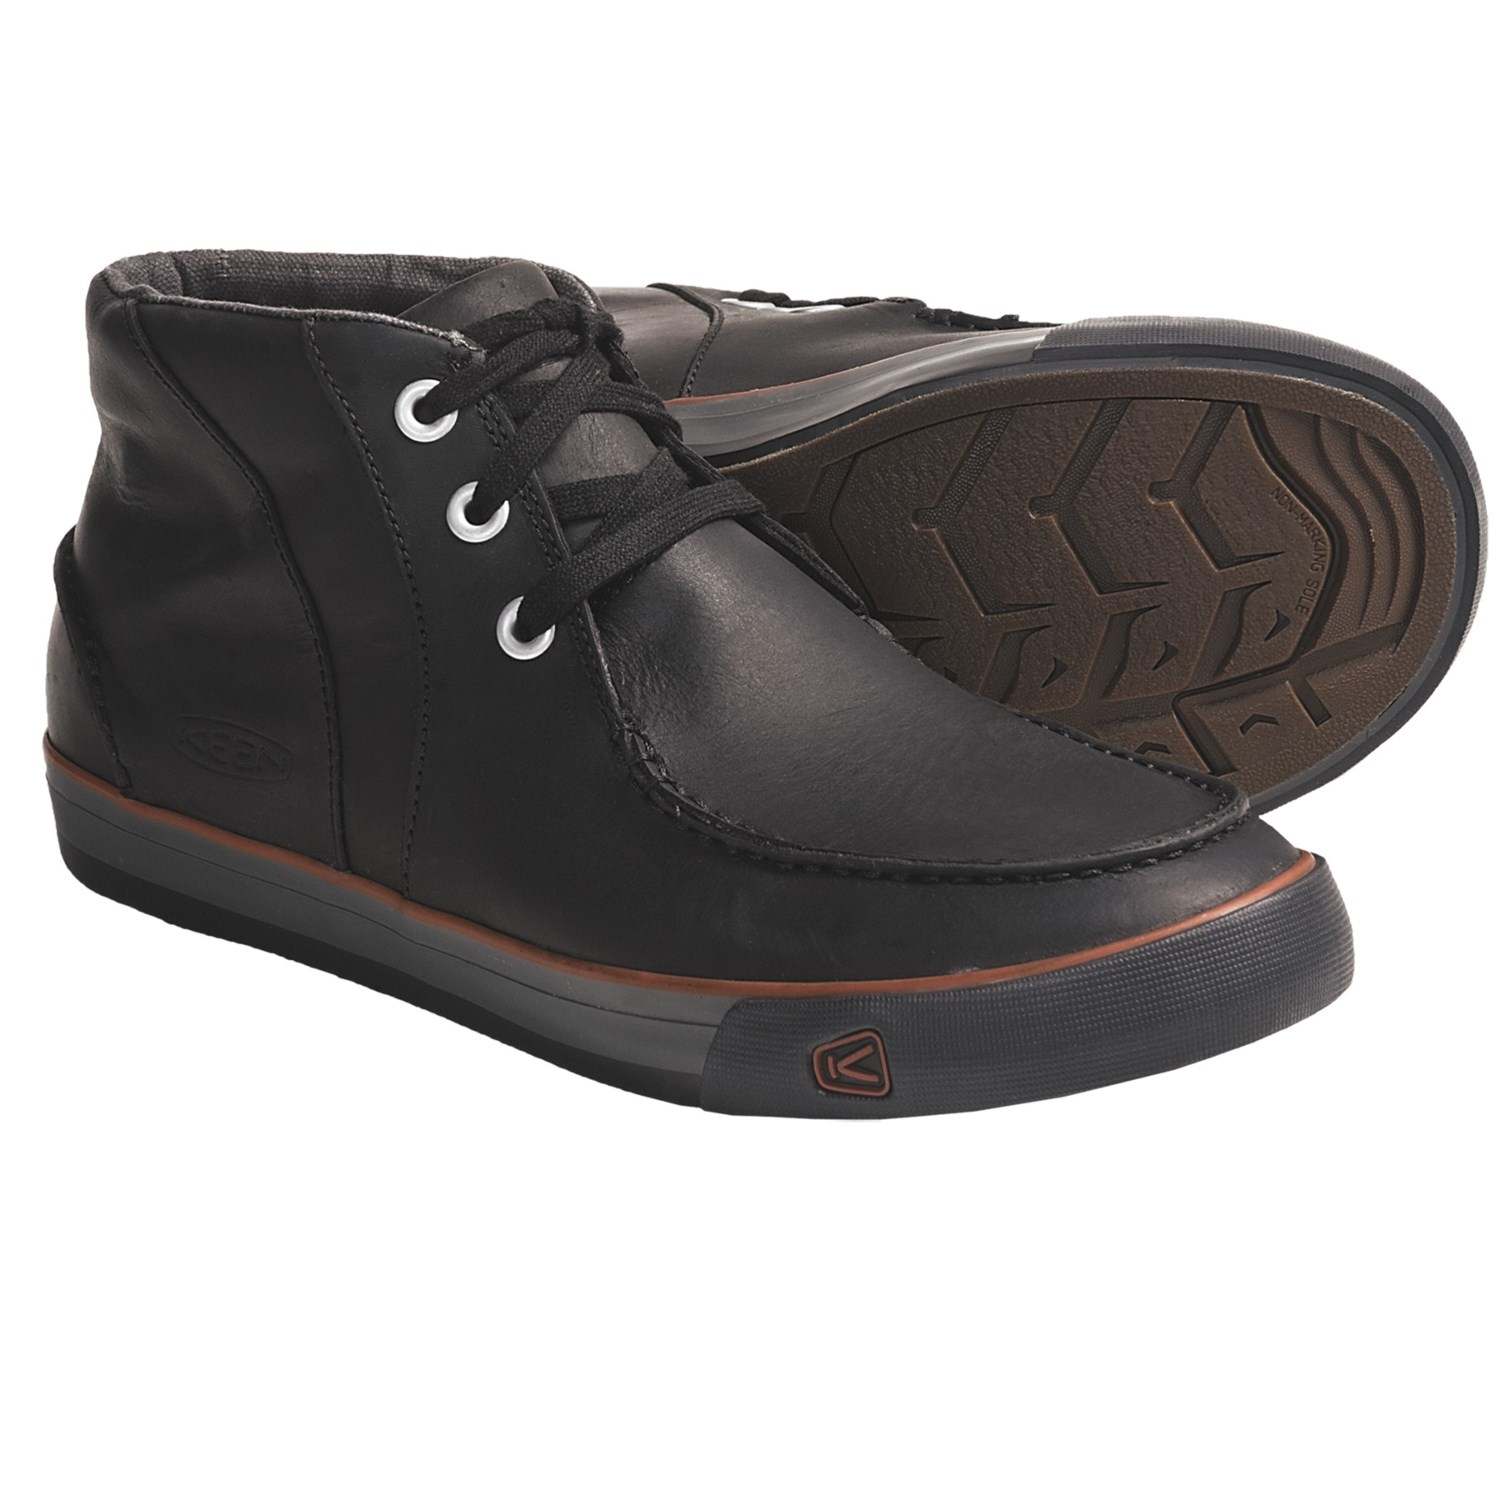 Best Way To Soften Leather Shoes